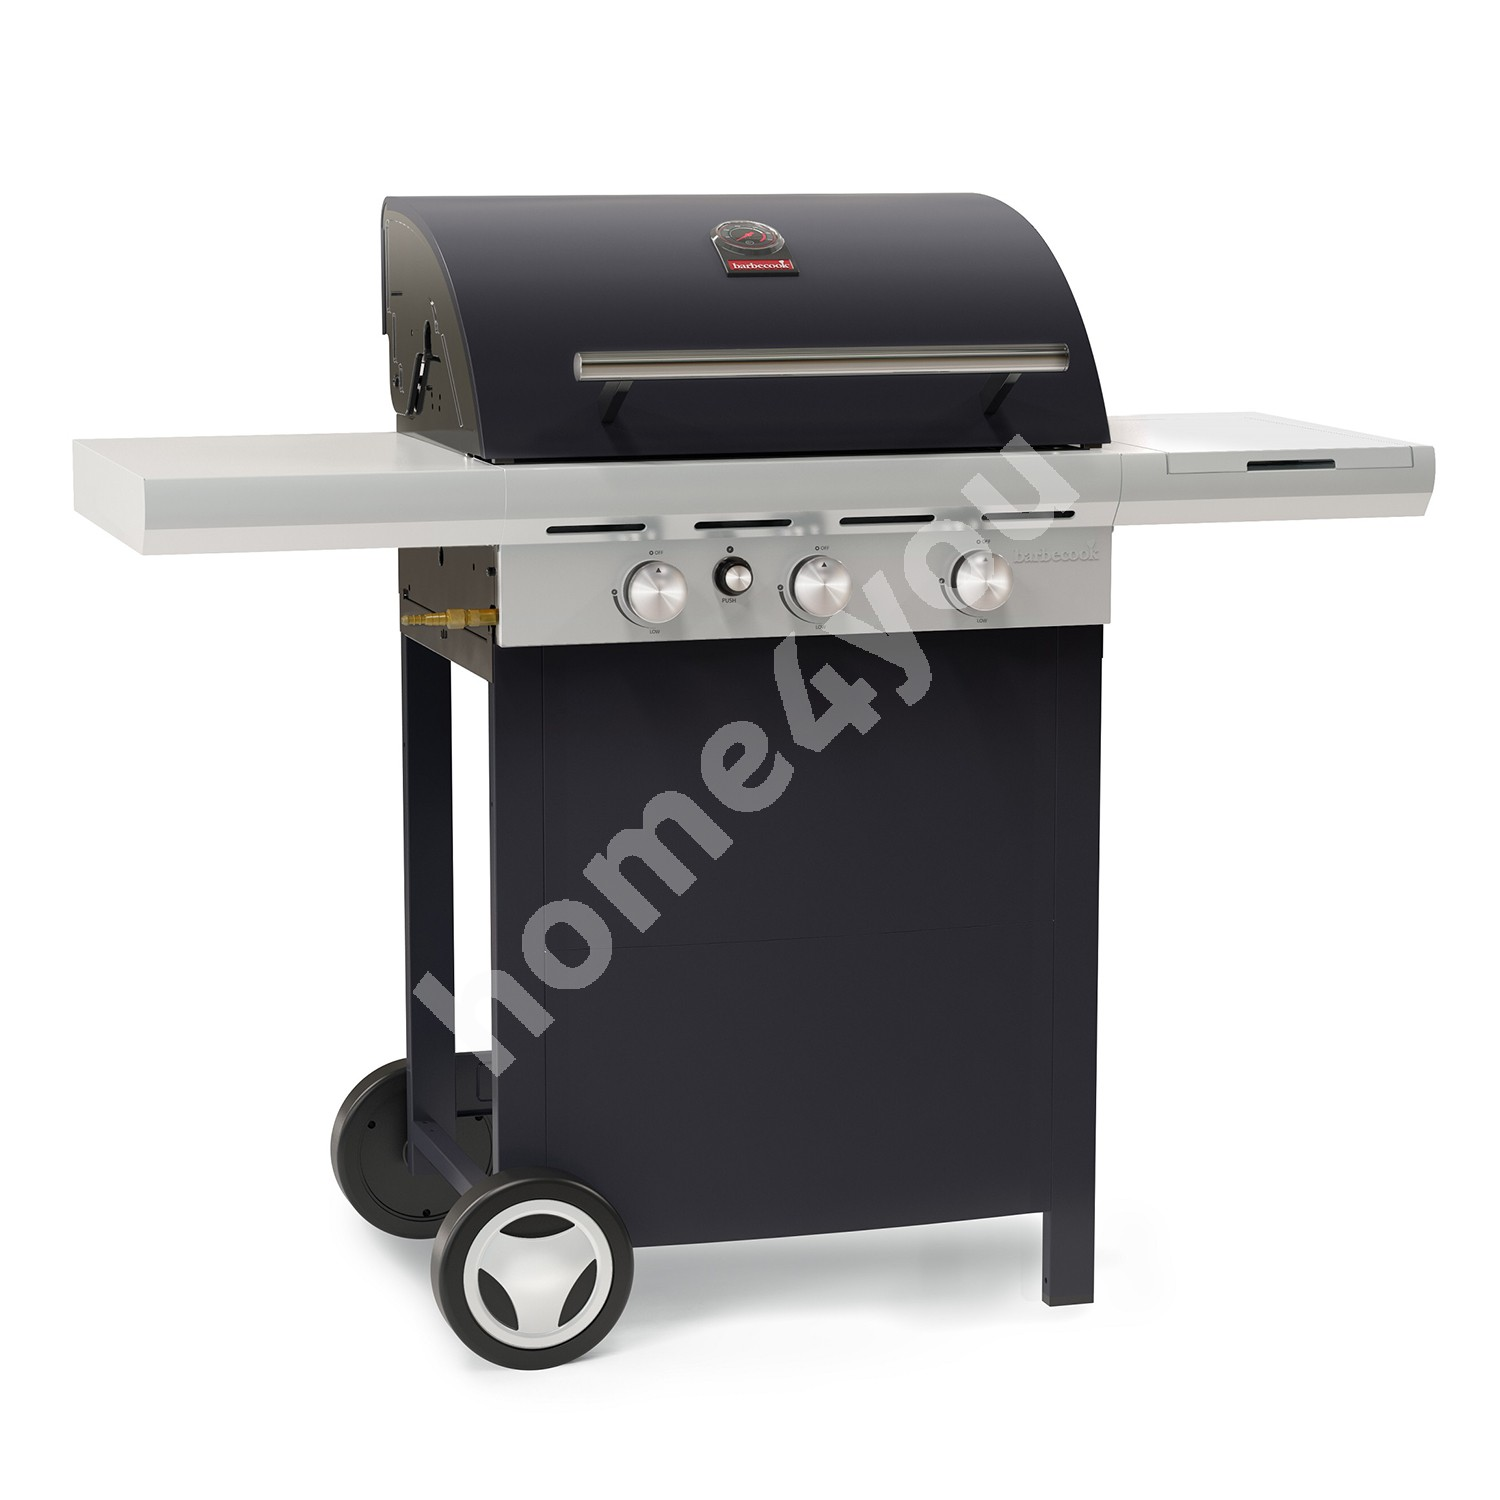 Gaasigrill BARBECOOK SPRING 3102